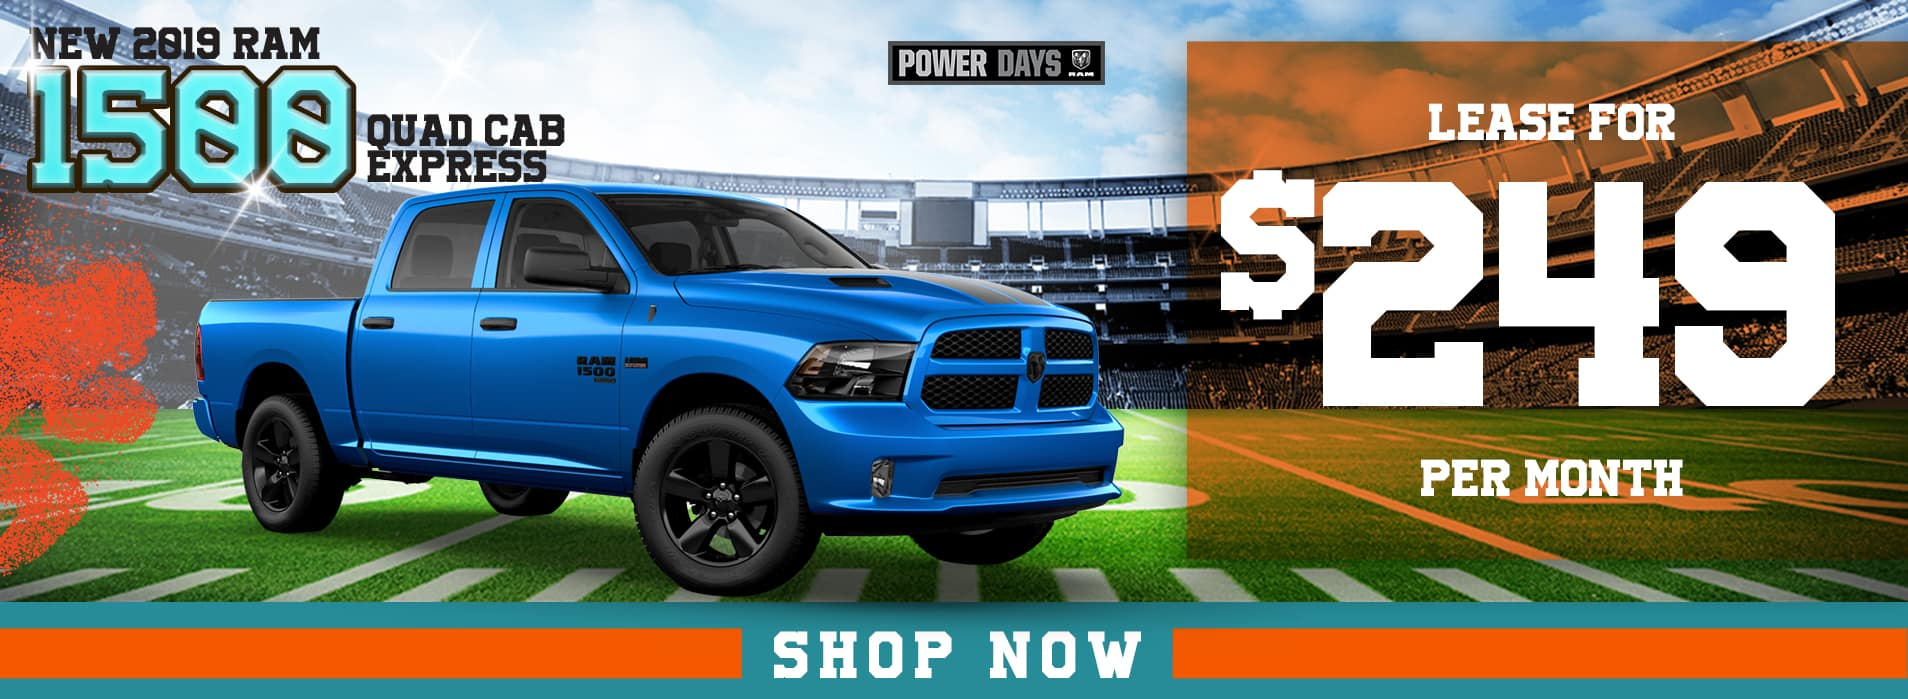 RAM 1500 | Lease for $249 per month